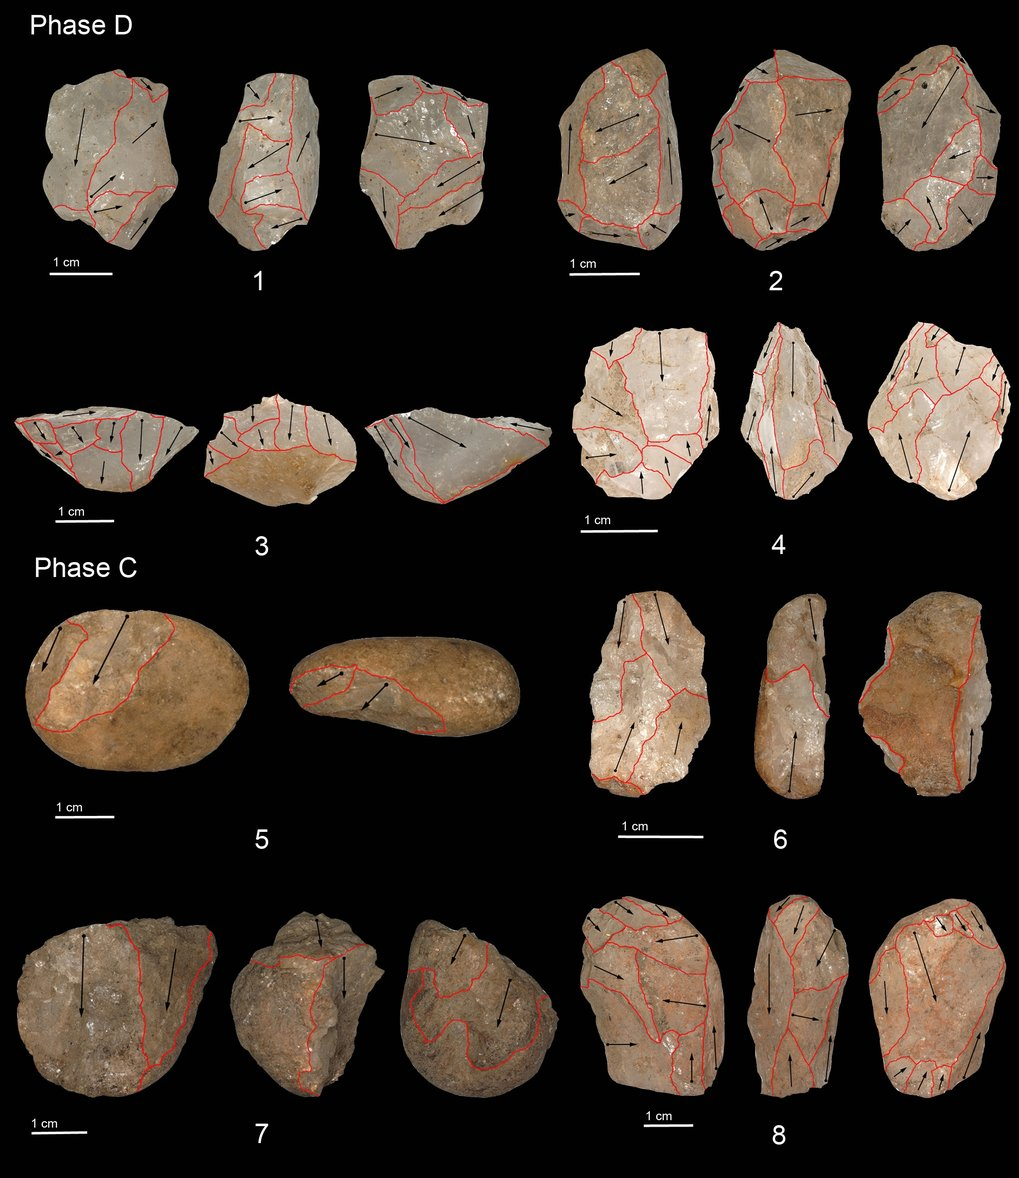 Oldest microlithic artifacts from Fa Hien Cave